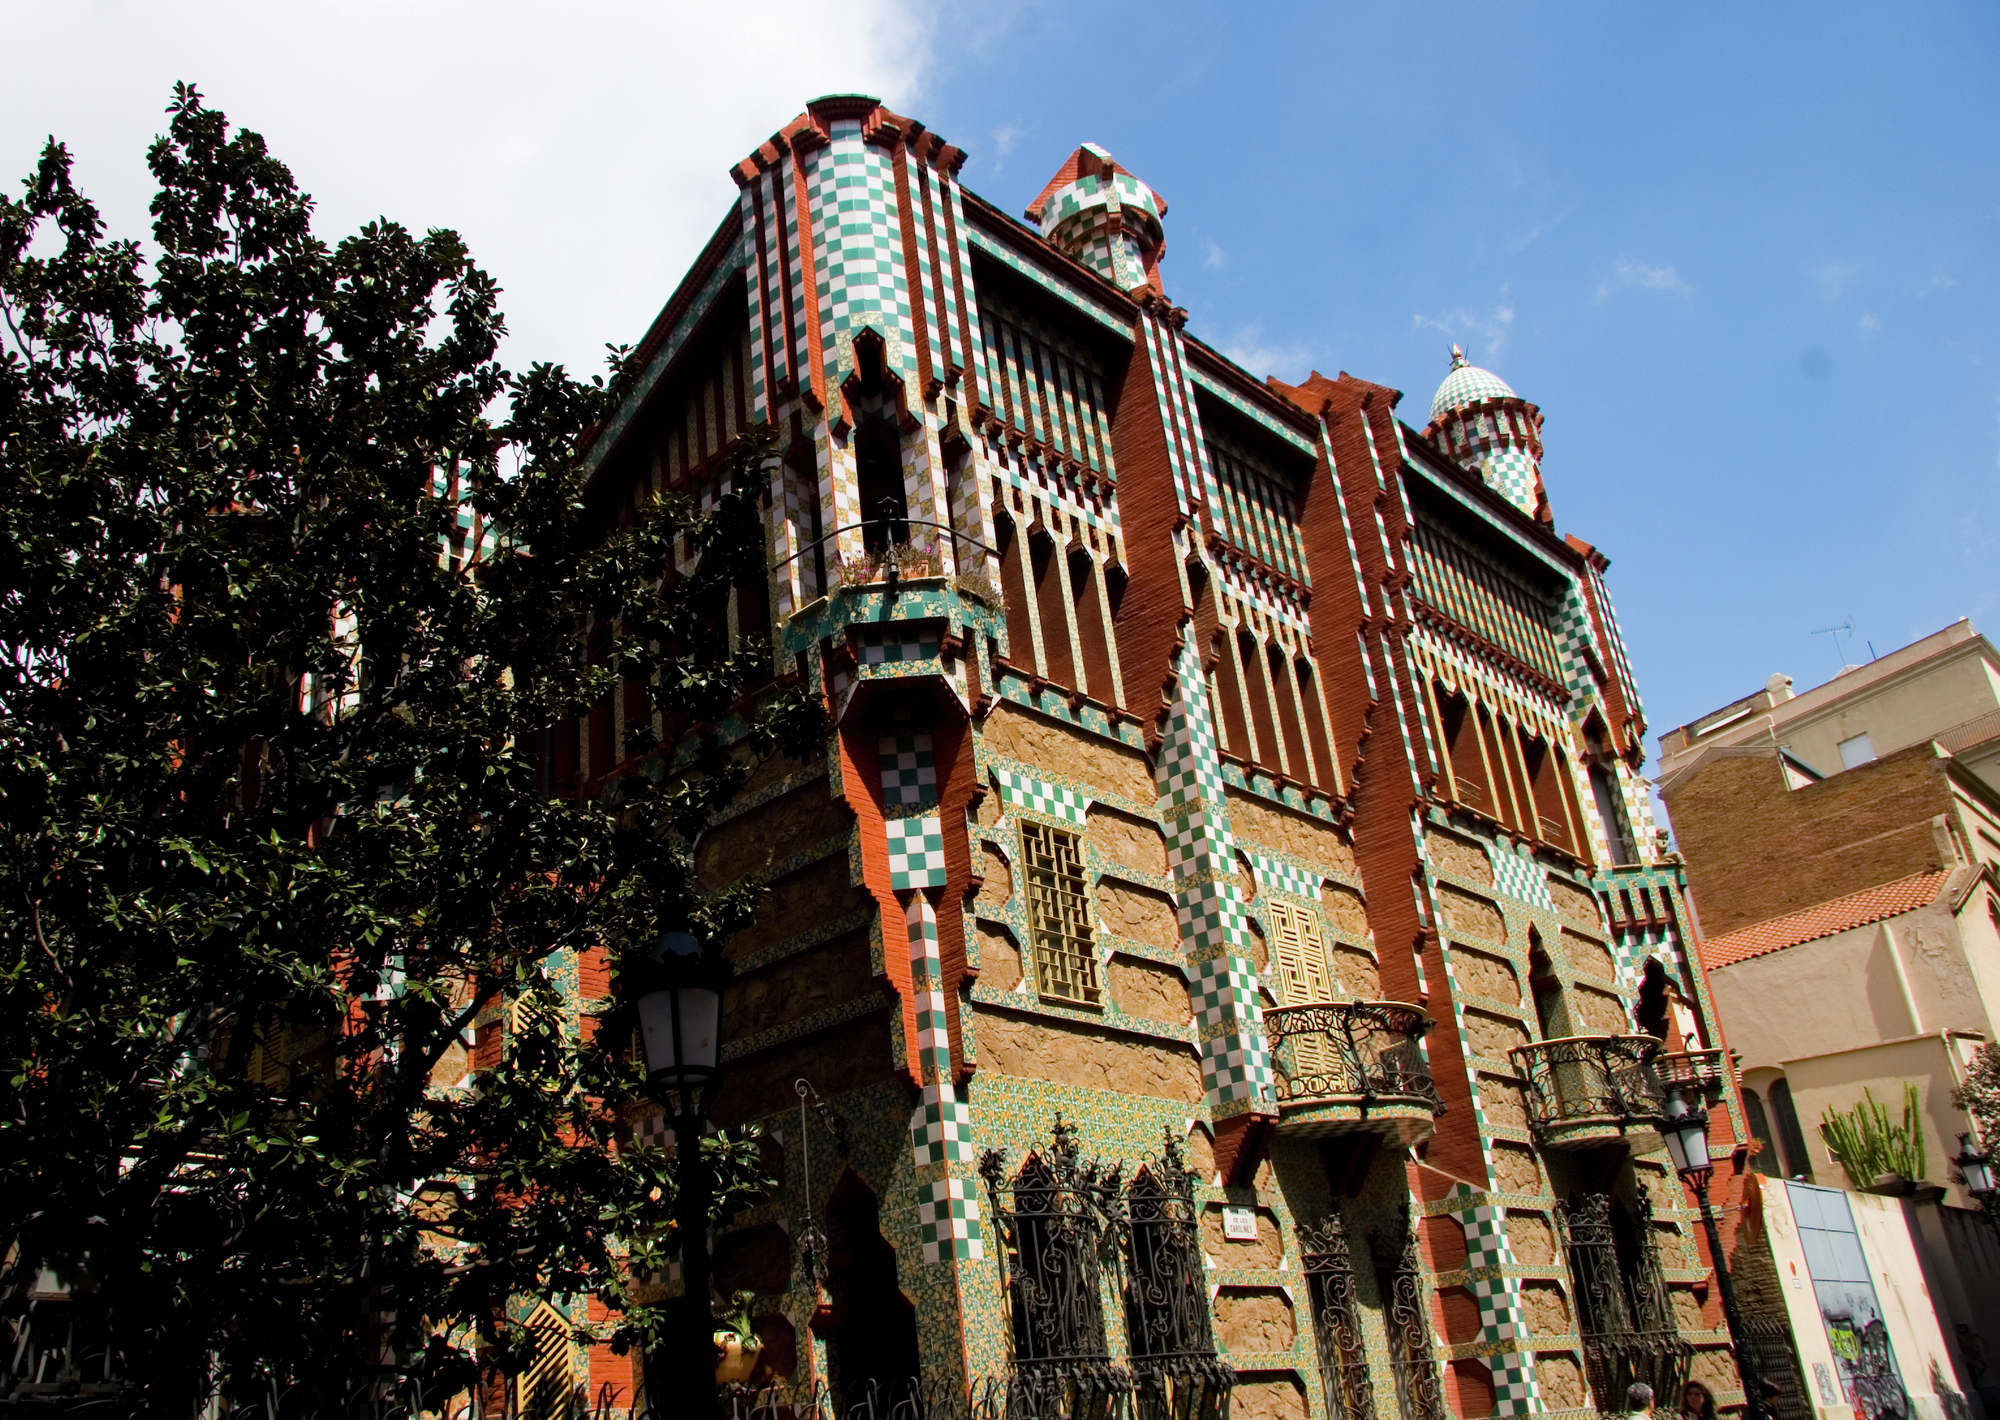 Gaud s casa vicens to open as a museum in 2016 archdaily - Casa vives gaudi ...